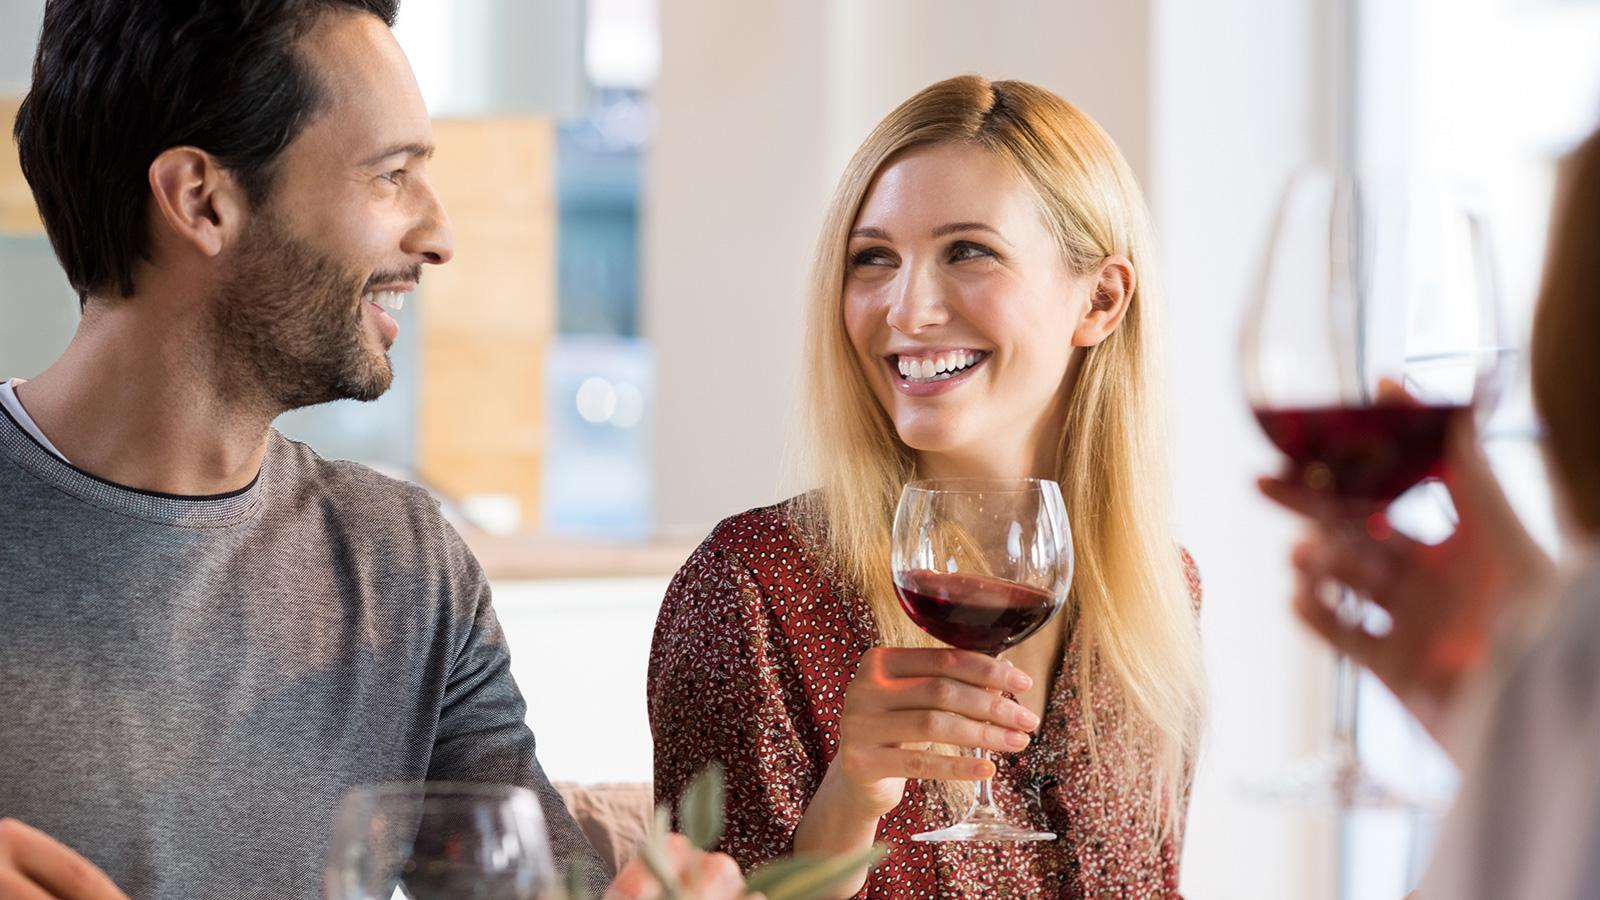 What Does Wine Do to Your Teeth?